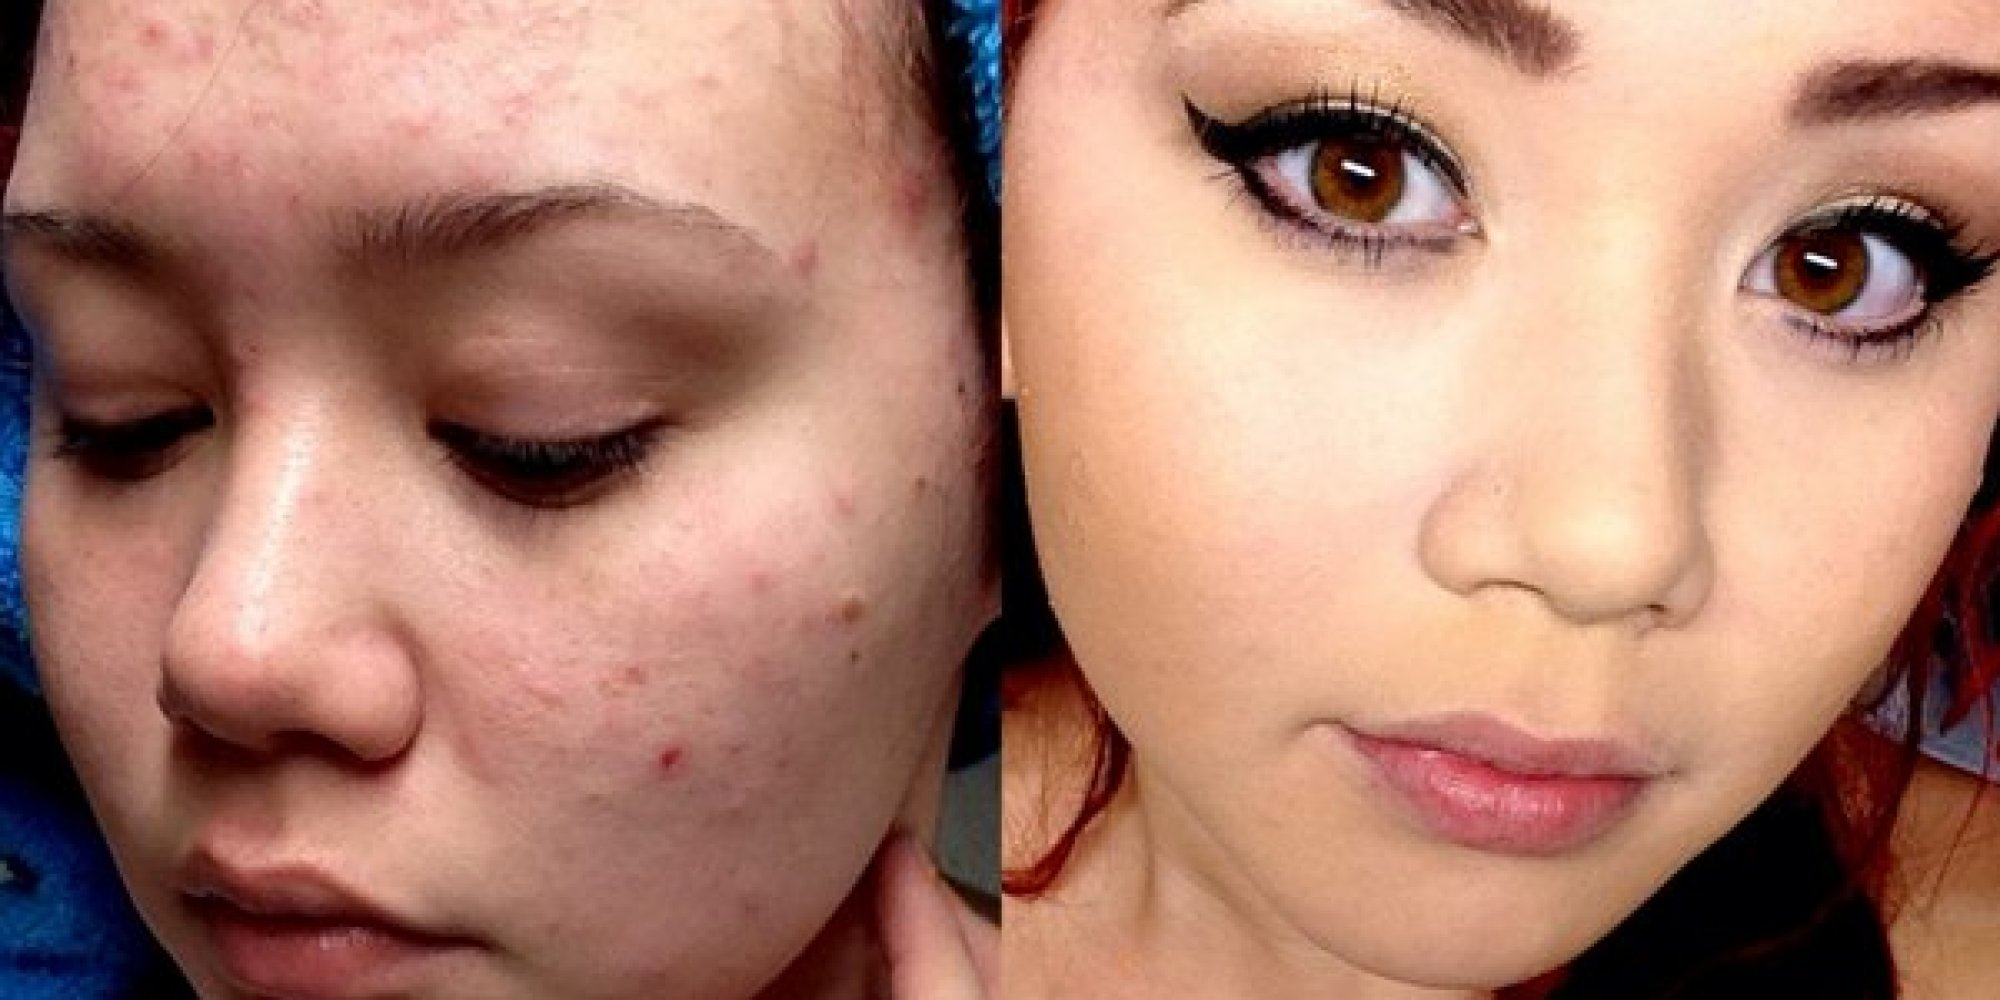 Before-And-After Makeup Photos Show Young Woman's Acne-Ridden Face